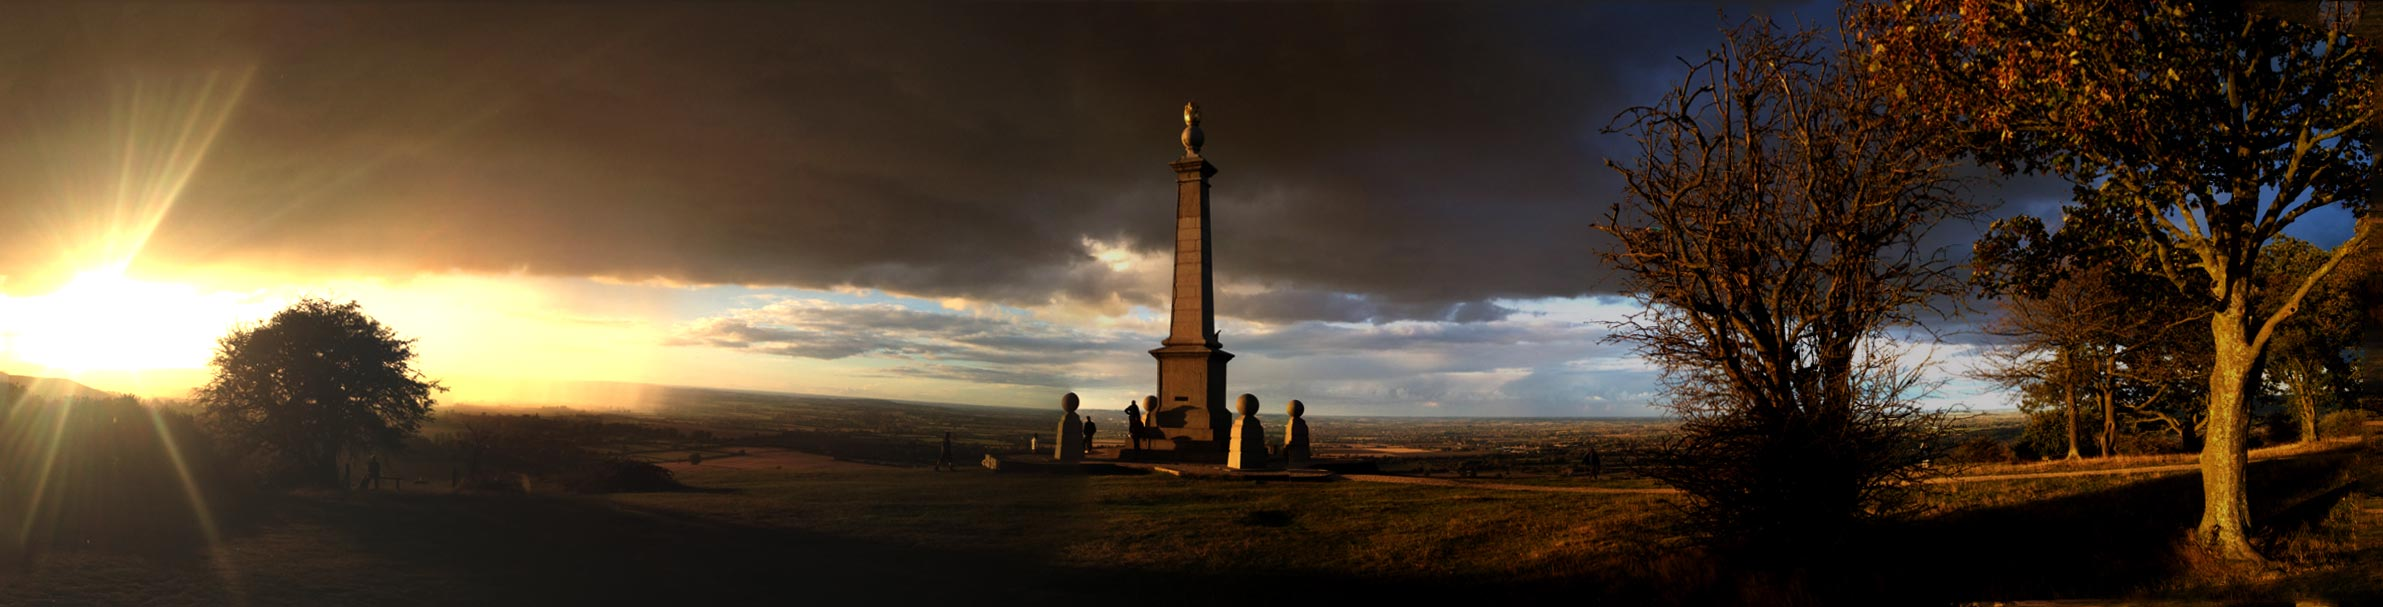 Coombe Hill in Buckinghamshire Copyright 2015